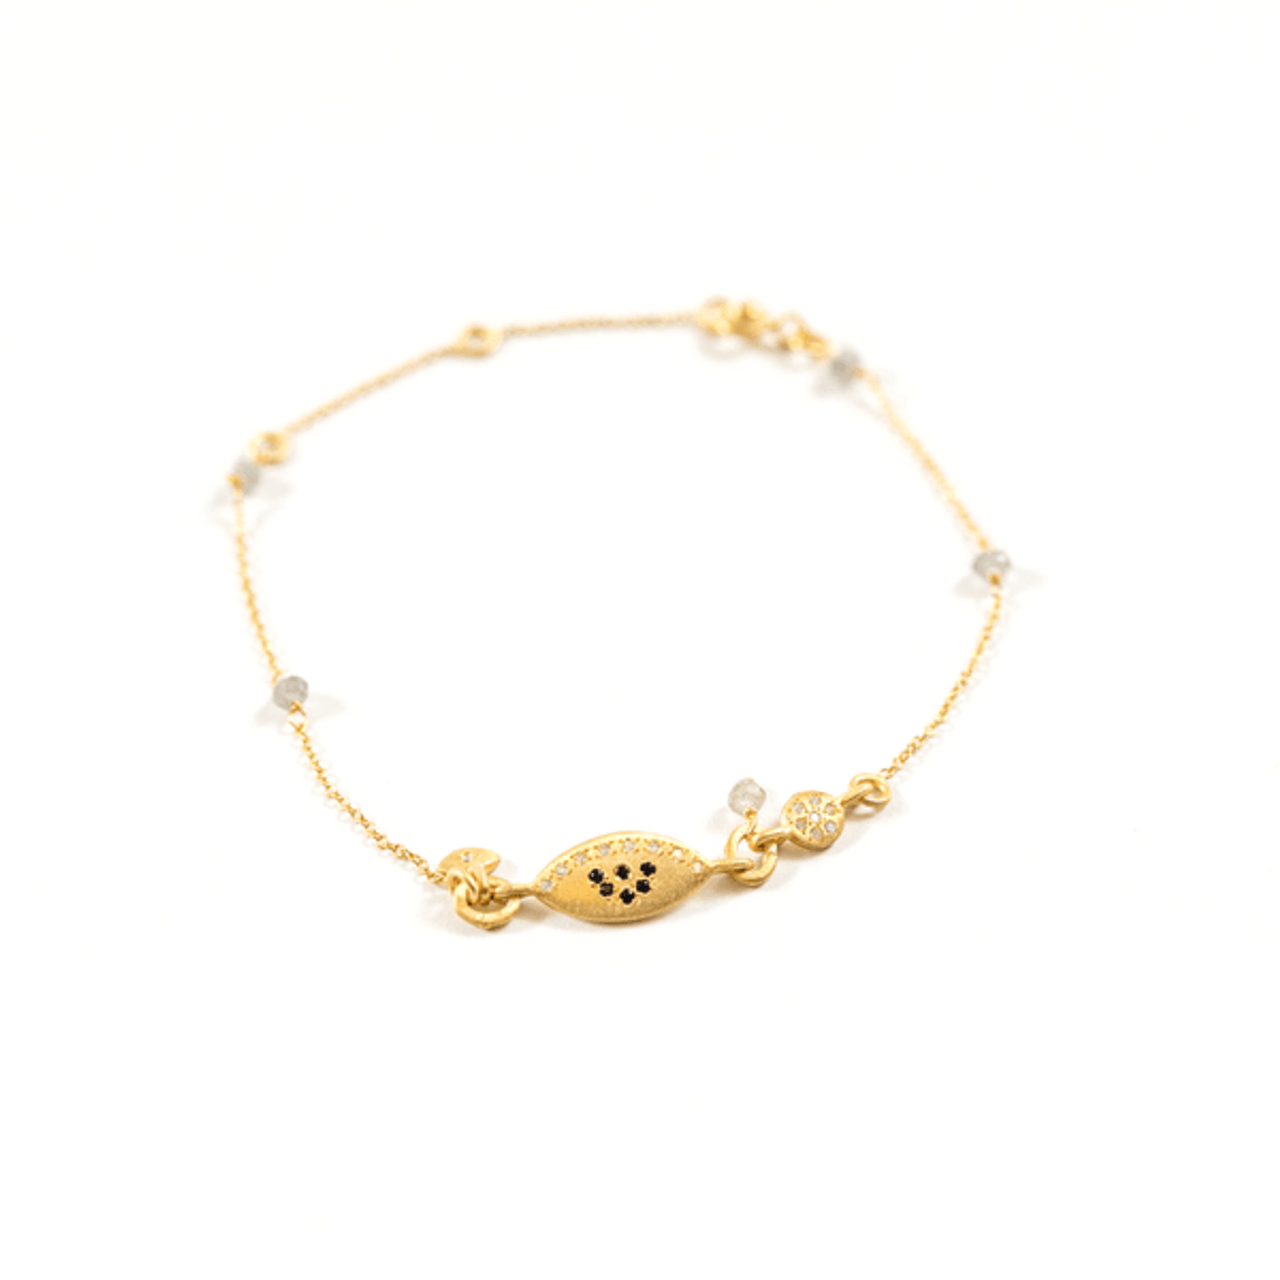 gold bracelet with white and black zircon